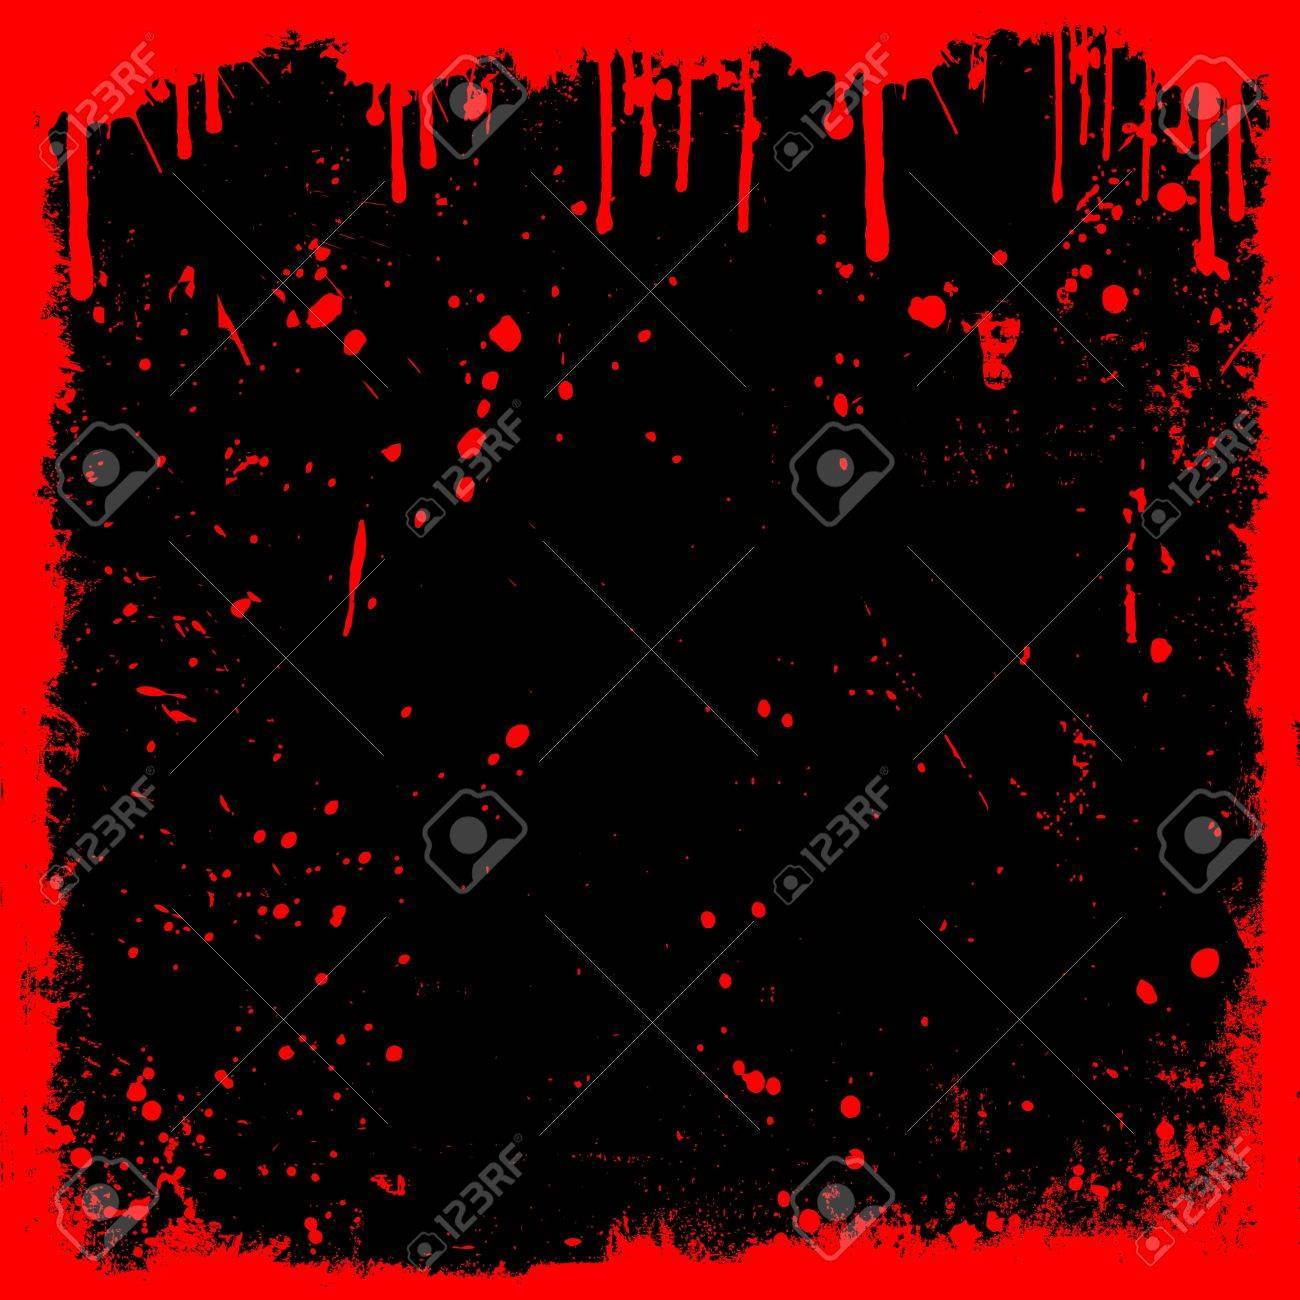 Detailed grunge background with drips and splats Stock Photo - 7287158